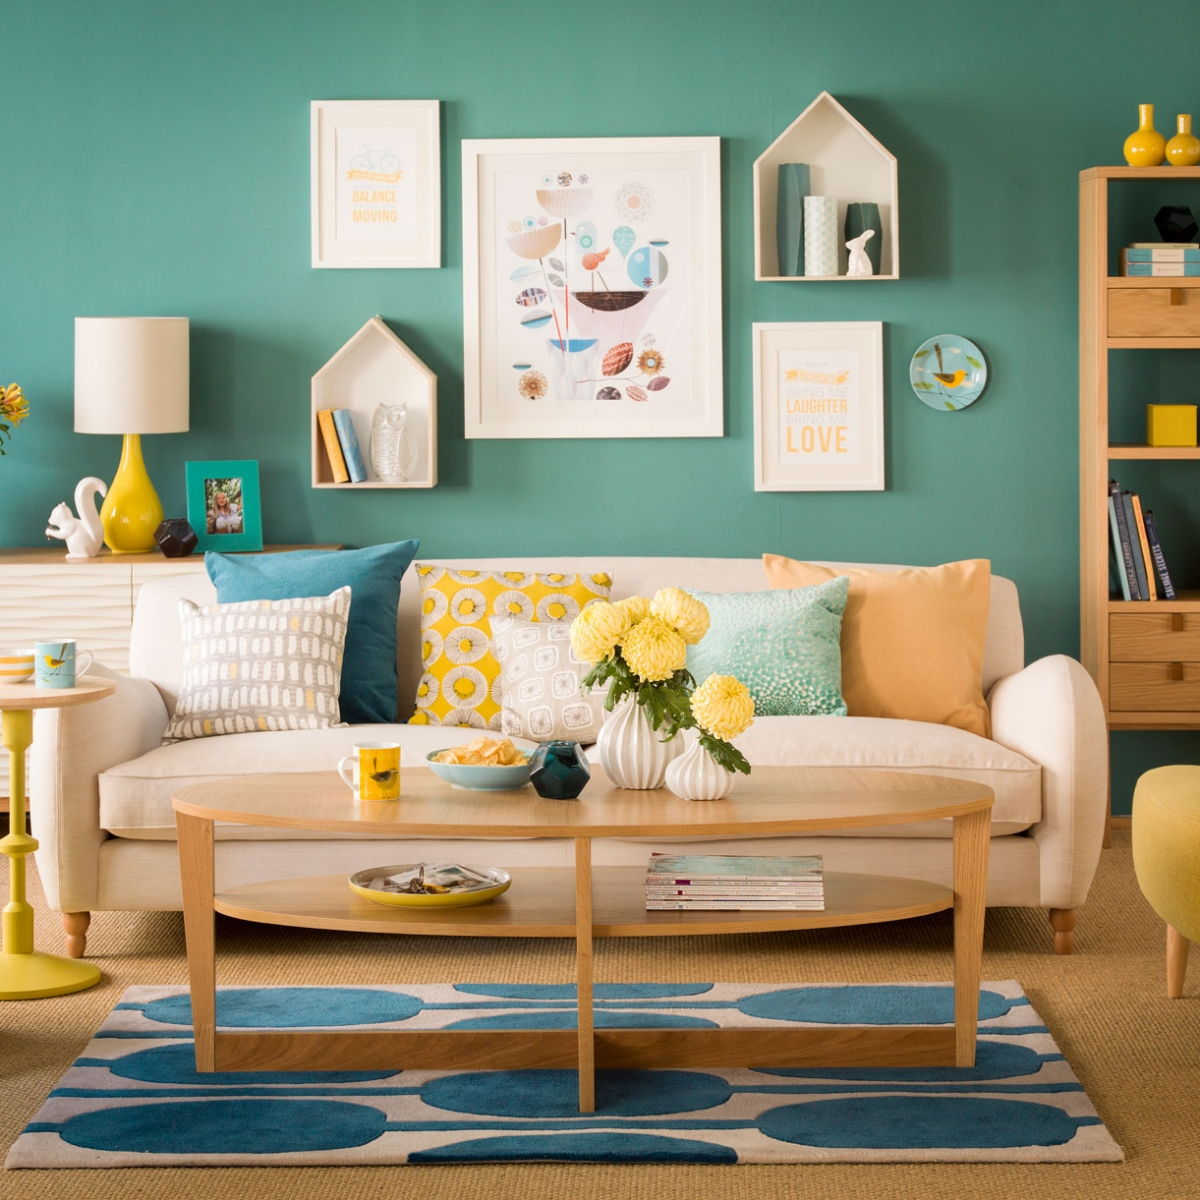 Create a mood board. Teal trend room scheme for Ideal Home magazine